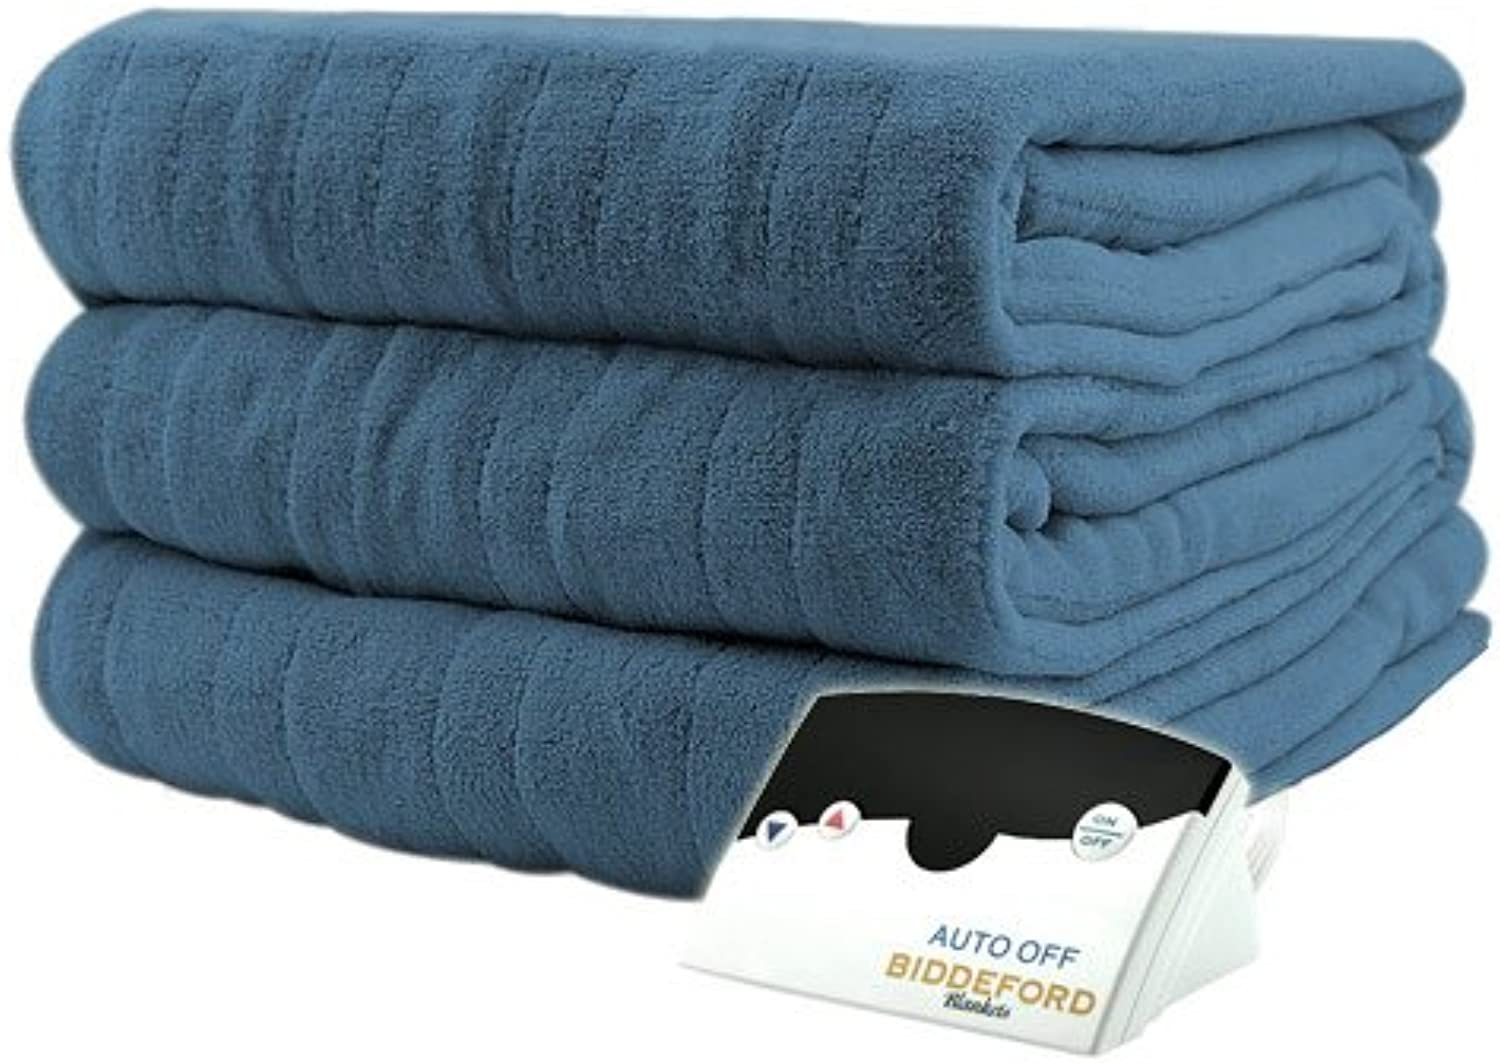 Biddeford 2031-905291-500 Luxurious MicroPlush Electric Heated Blanket Full Denim